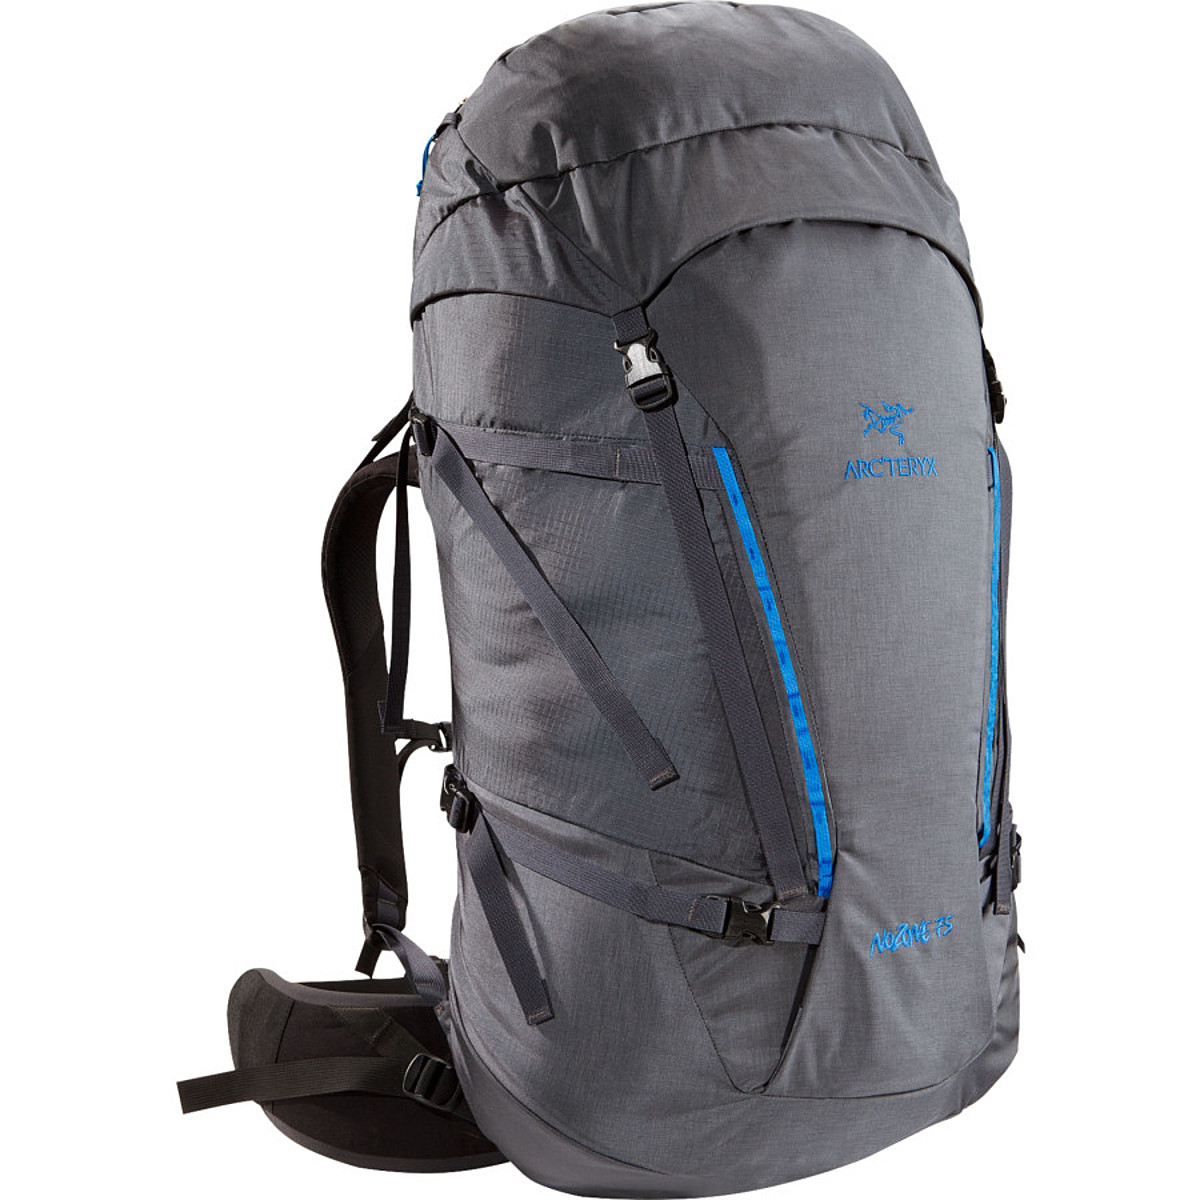 photo: Arc'teryx Nozone 75 expedition pack (4,500+ cu in)